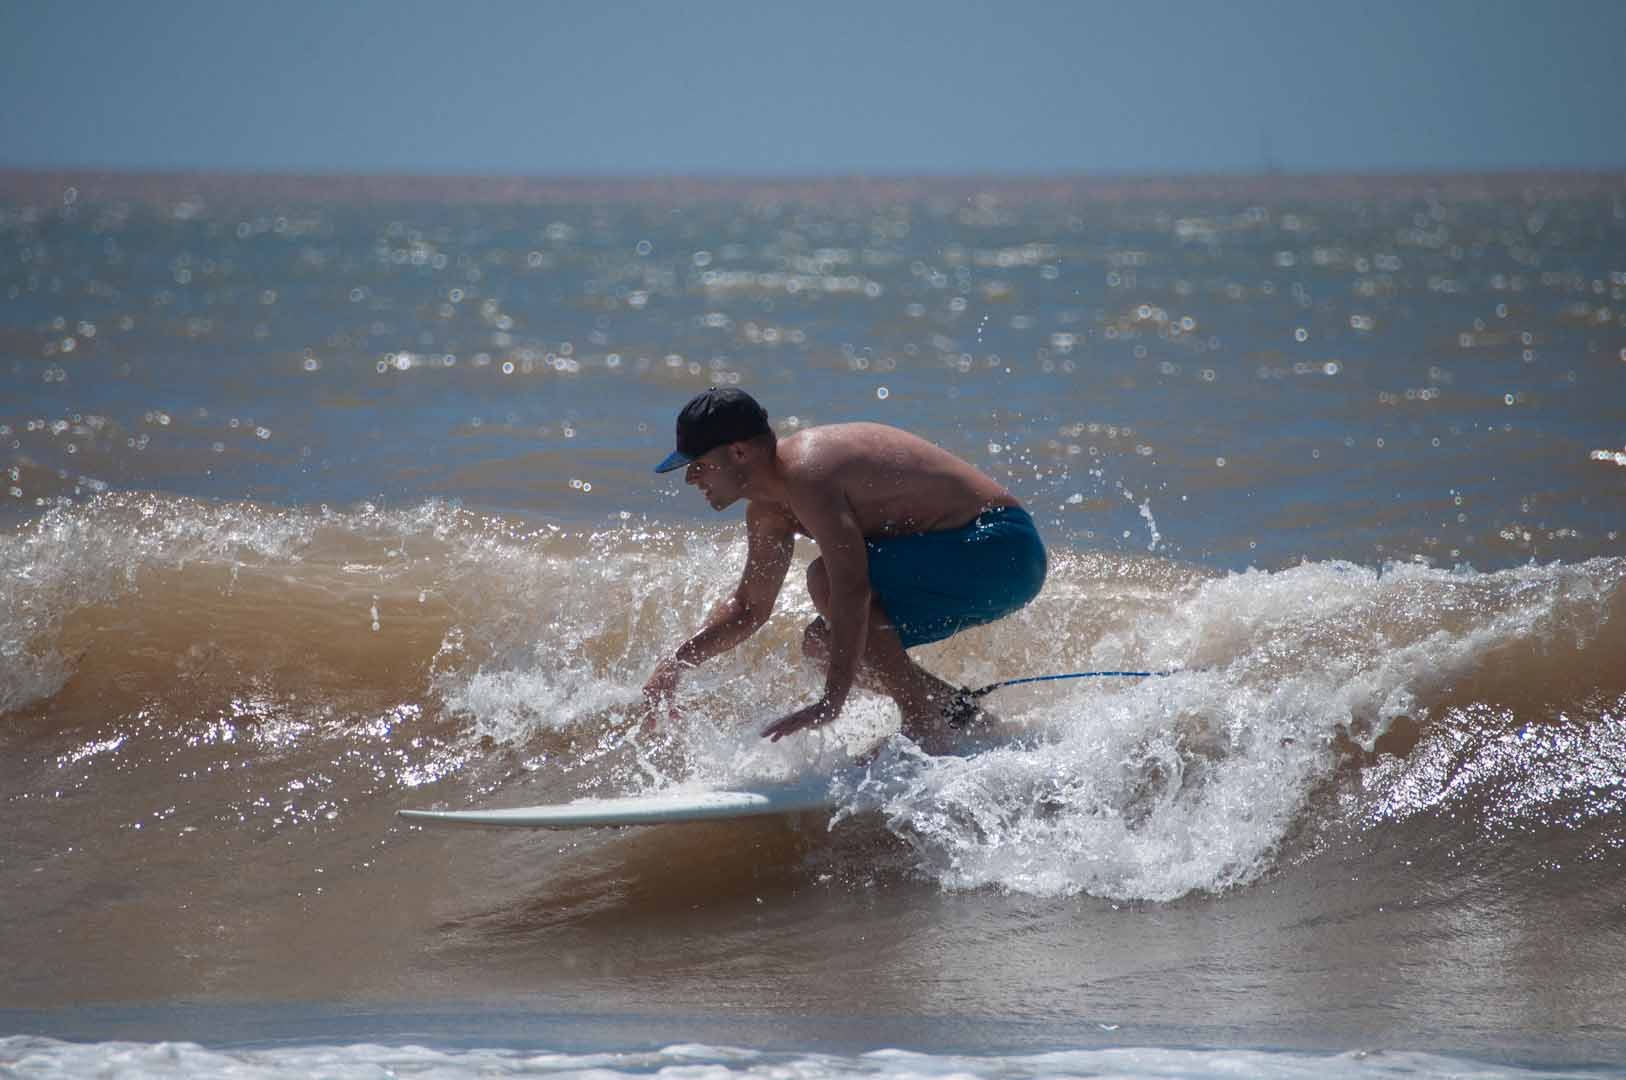 SurfsideLateJune_20150627_049